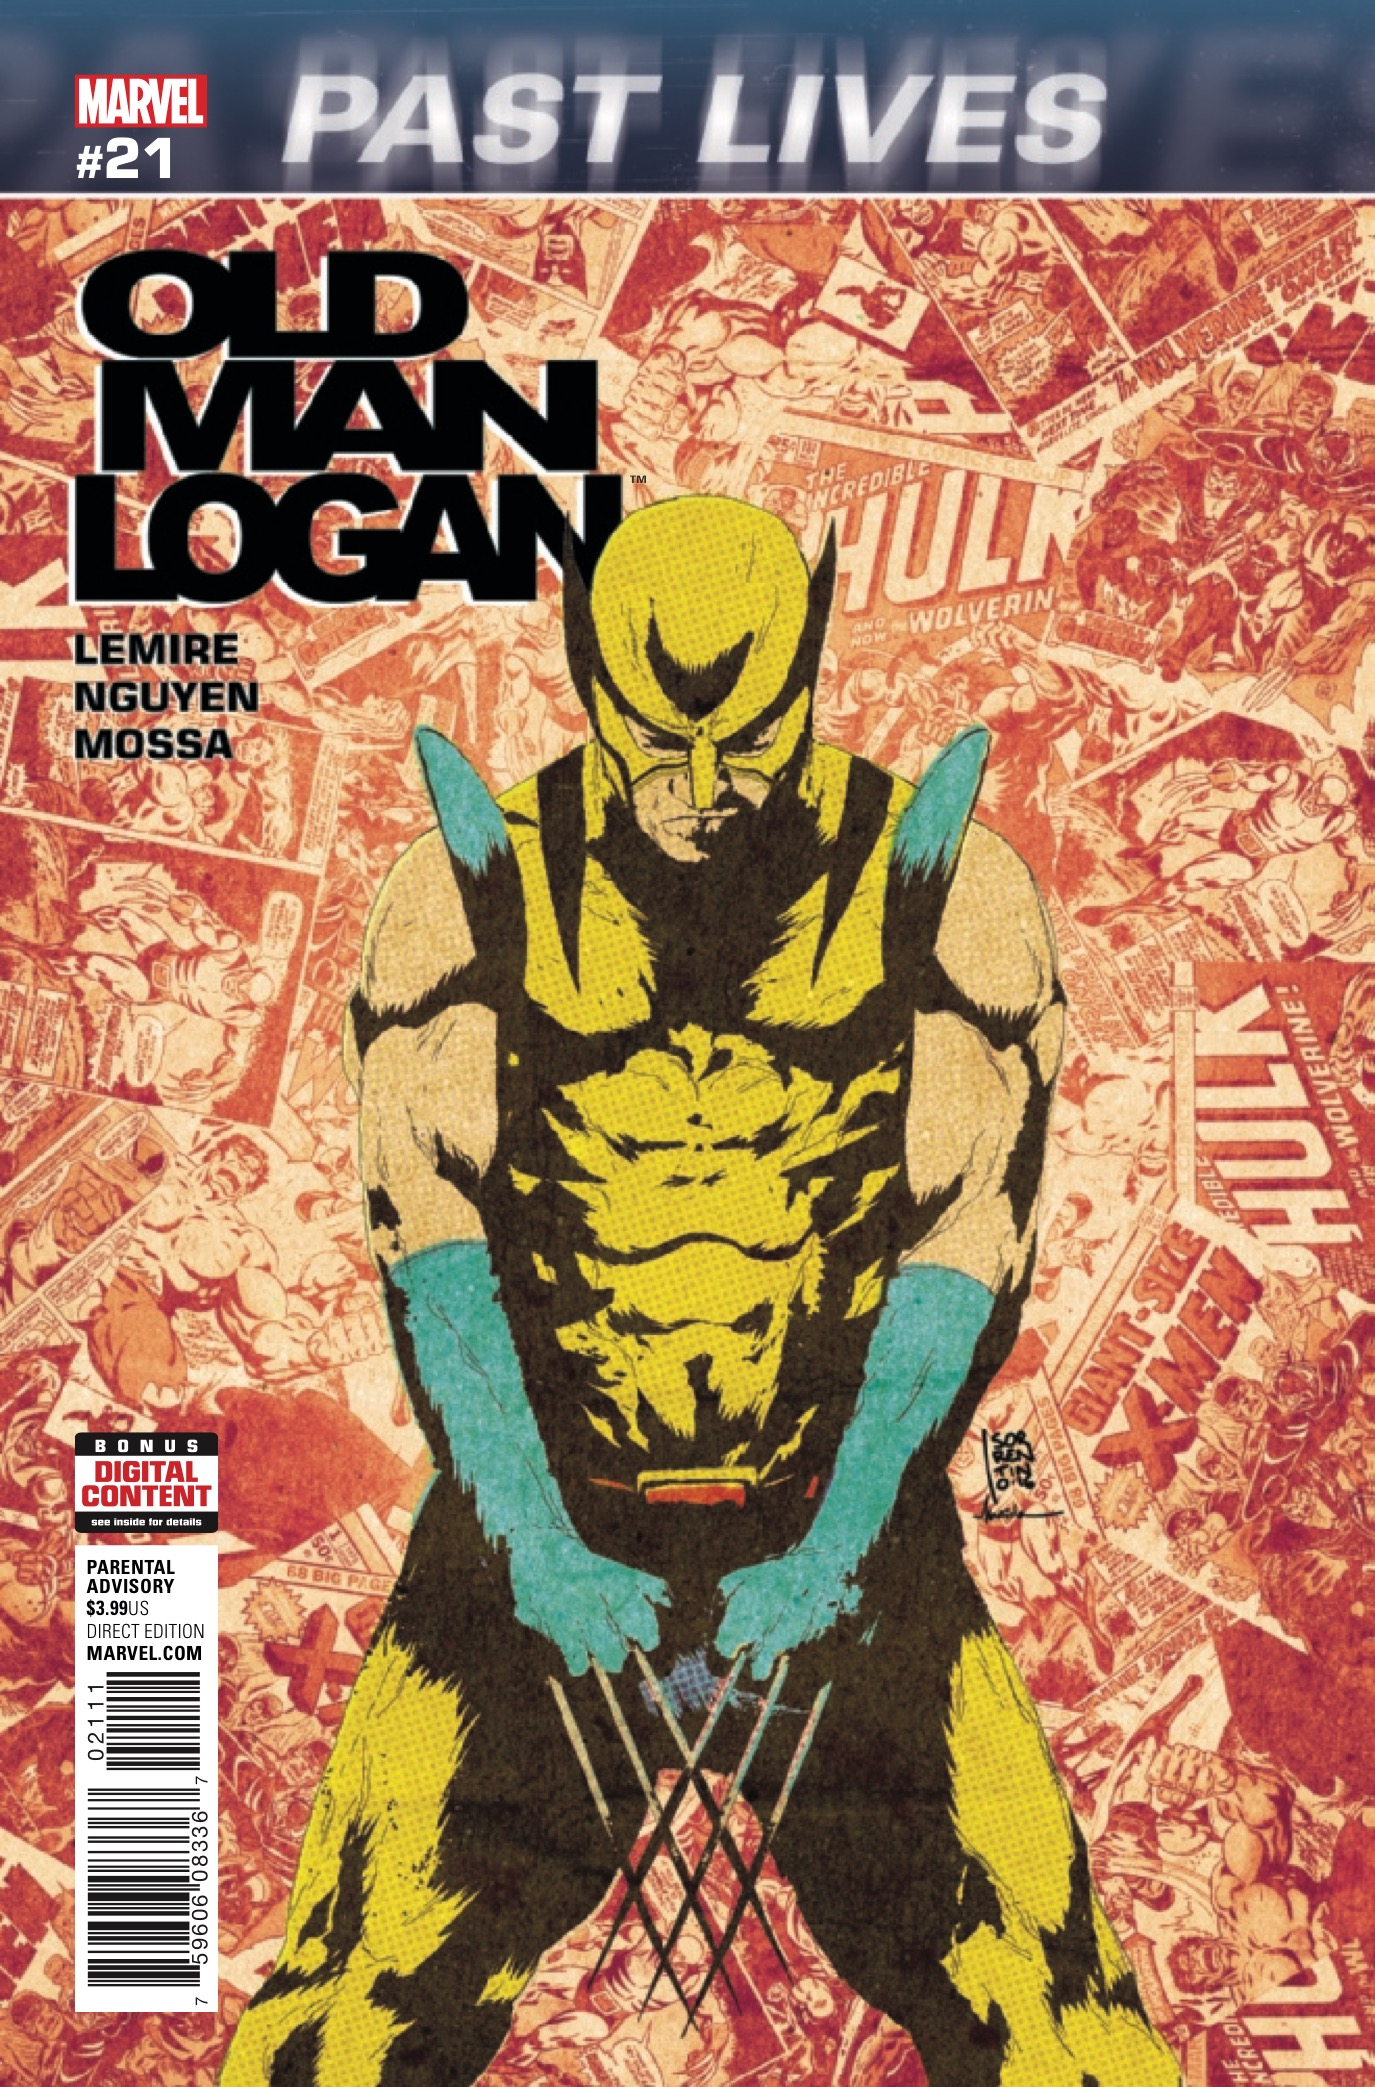 Old Man Logan #21 Review